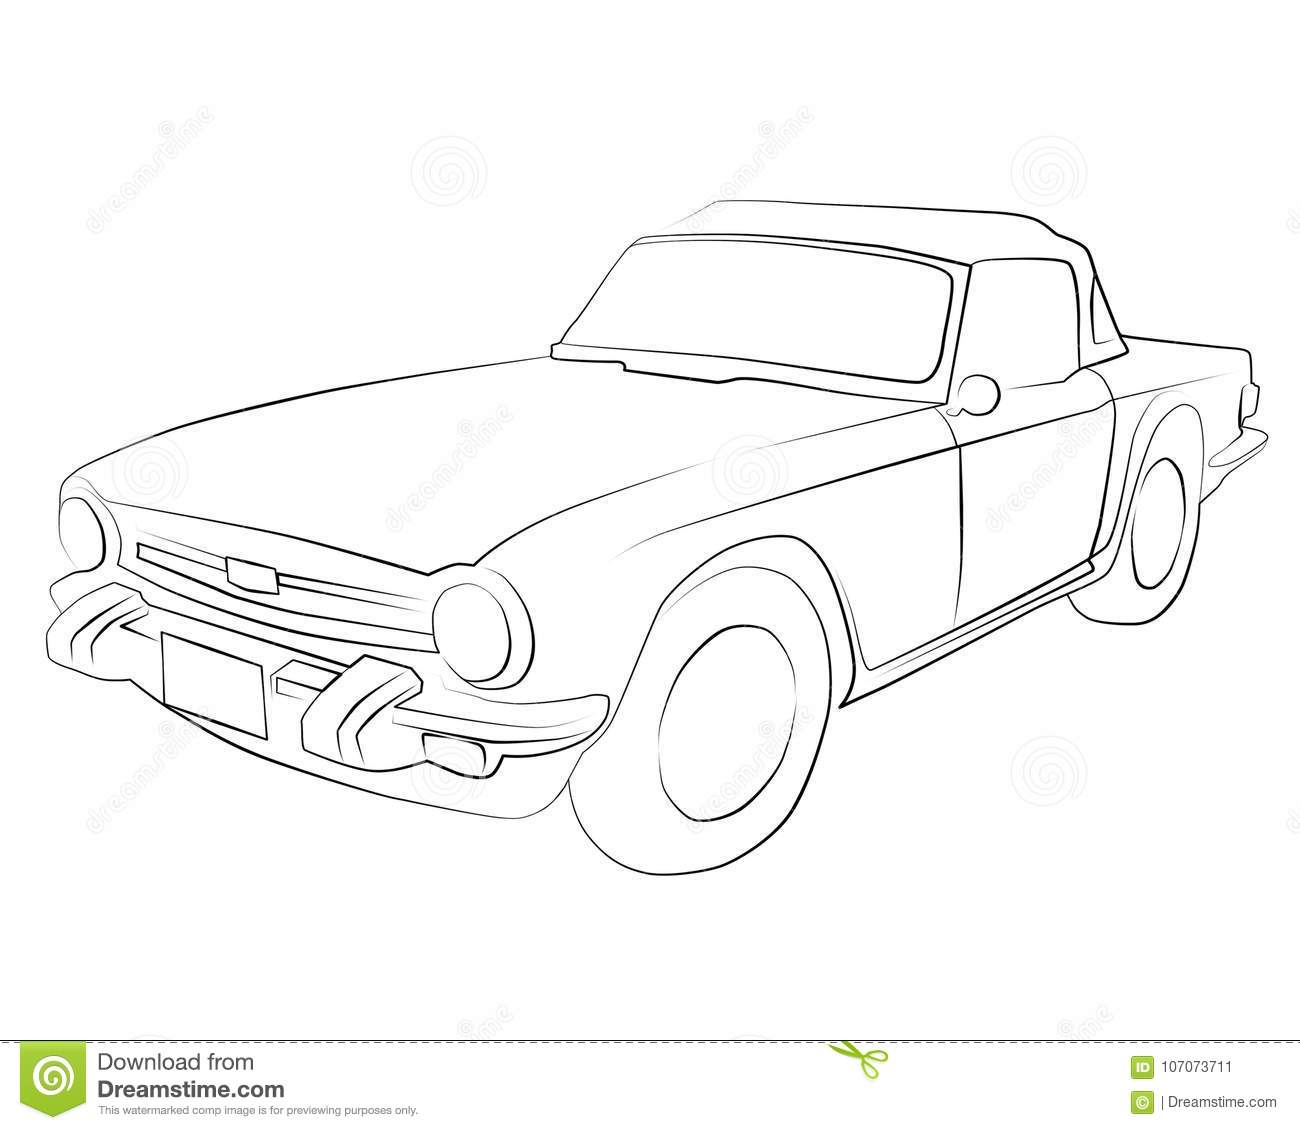 Coloring Pages To Print Car Triumph_TR6 Stock Illustration